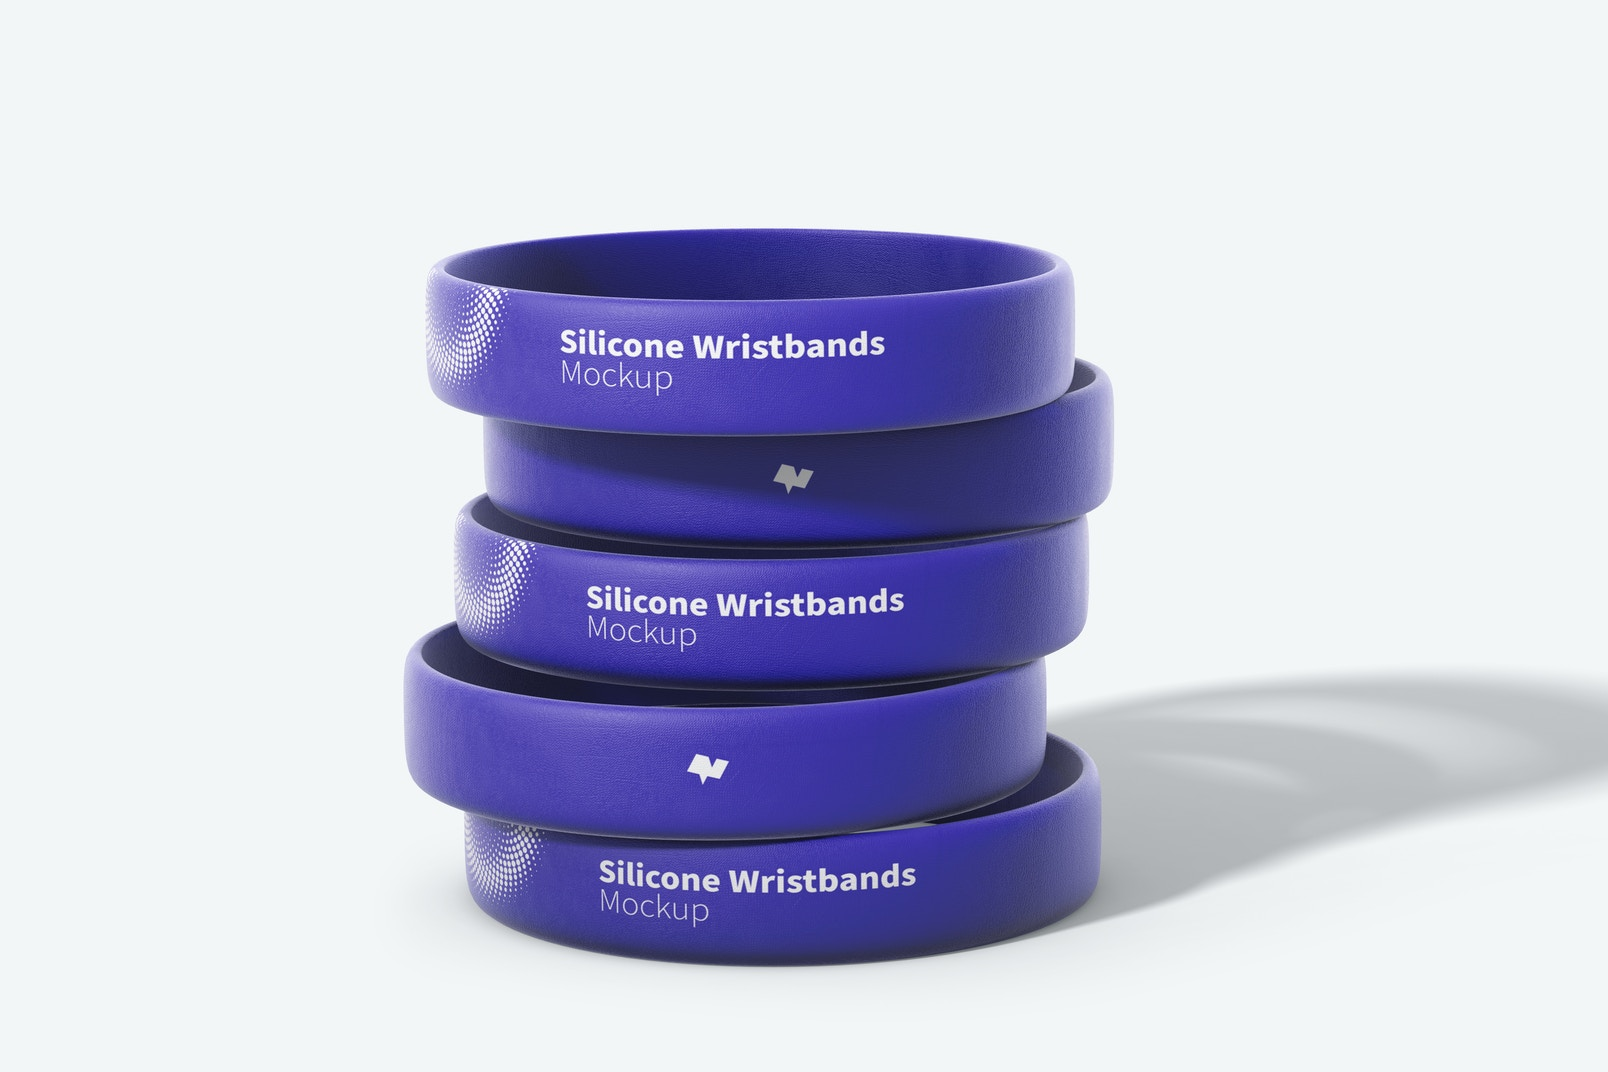 Silicone Wristbands Set Mockup, Front View, Stacked